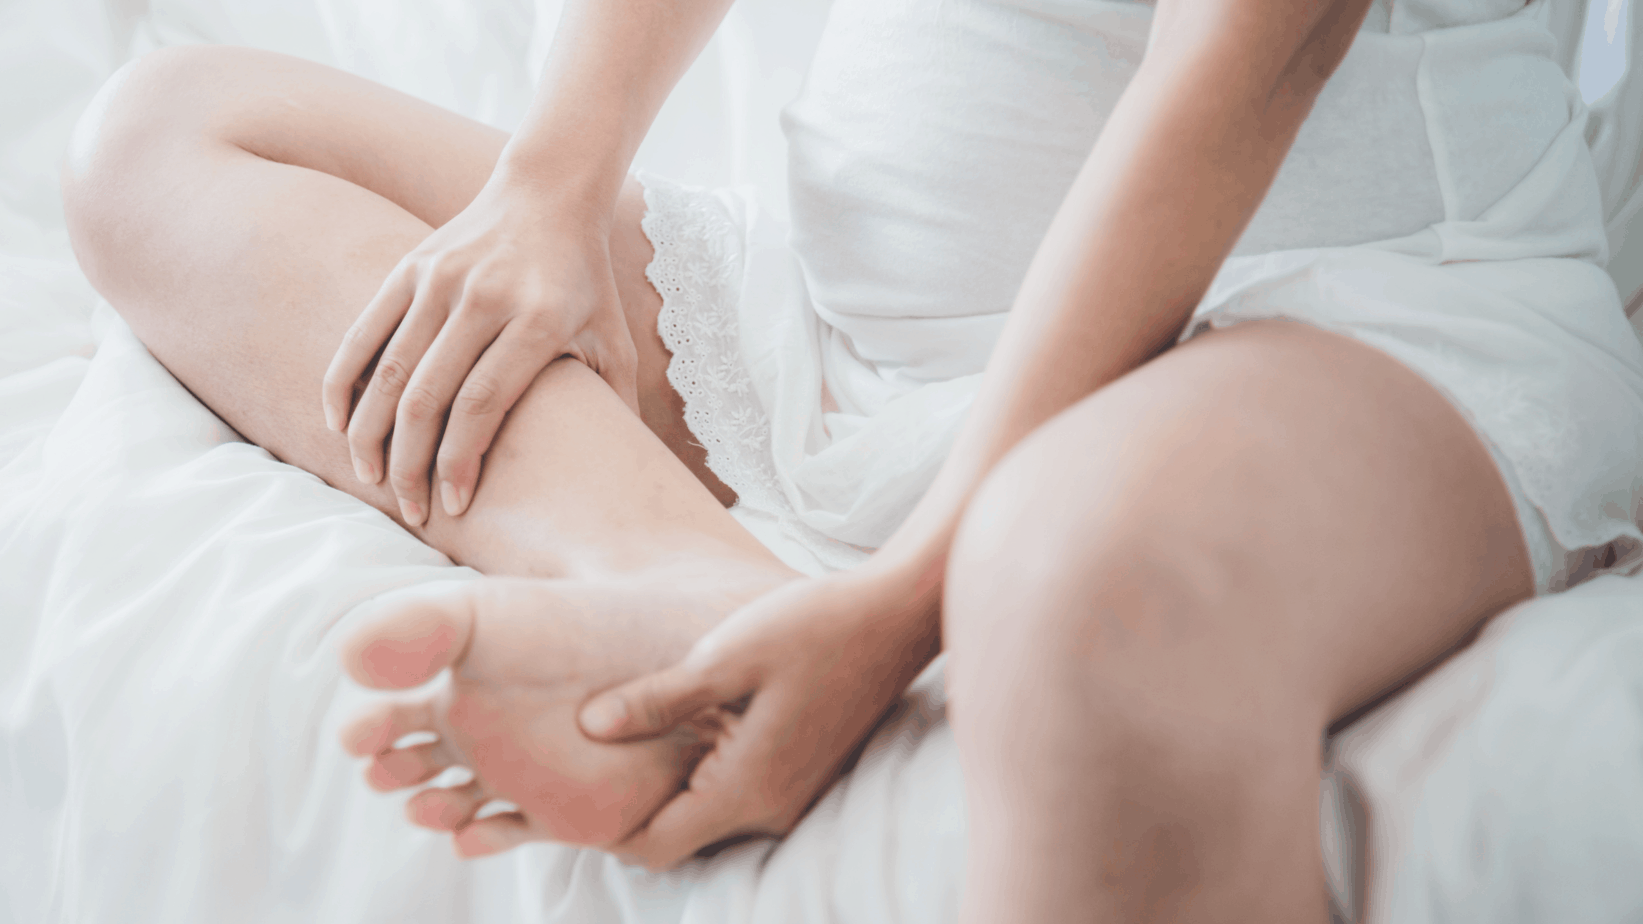 The facts about hidden varicose veins